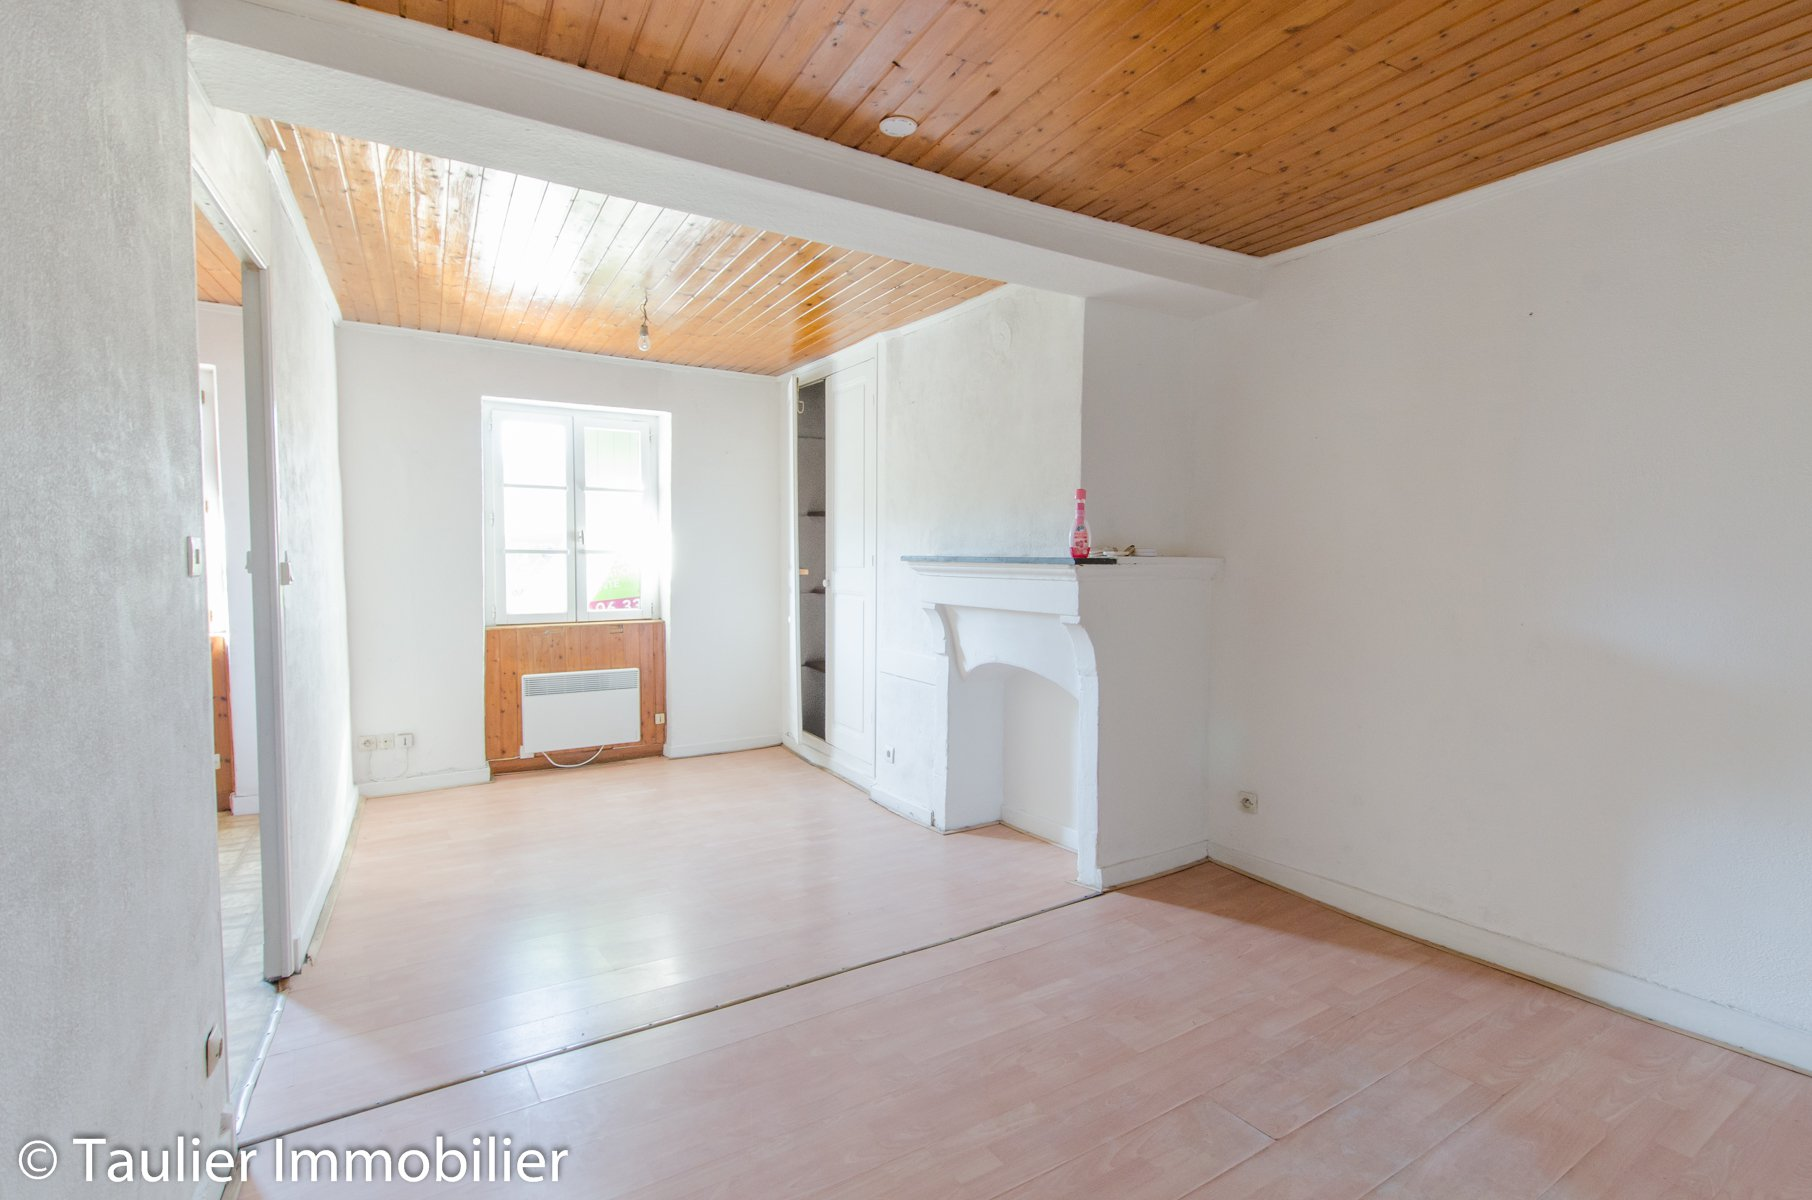 Immeuble 6 appartements, bon potentiel locatif